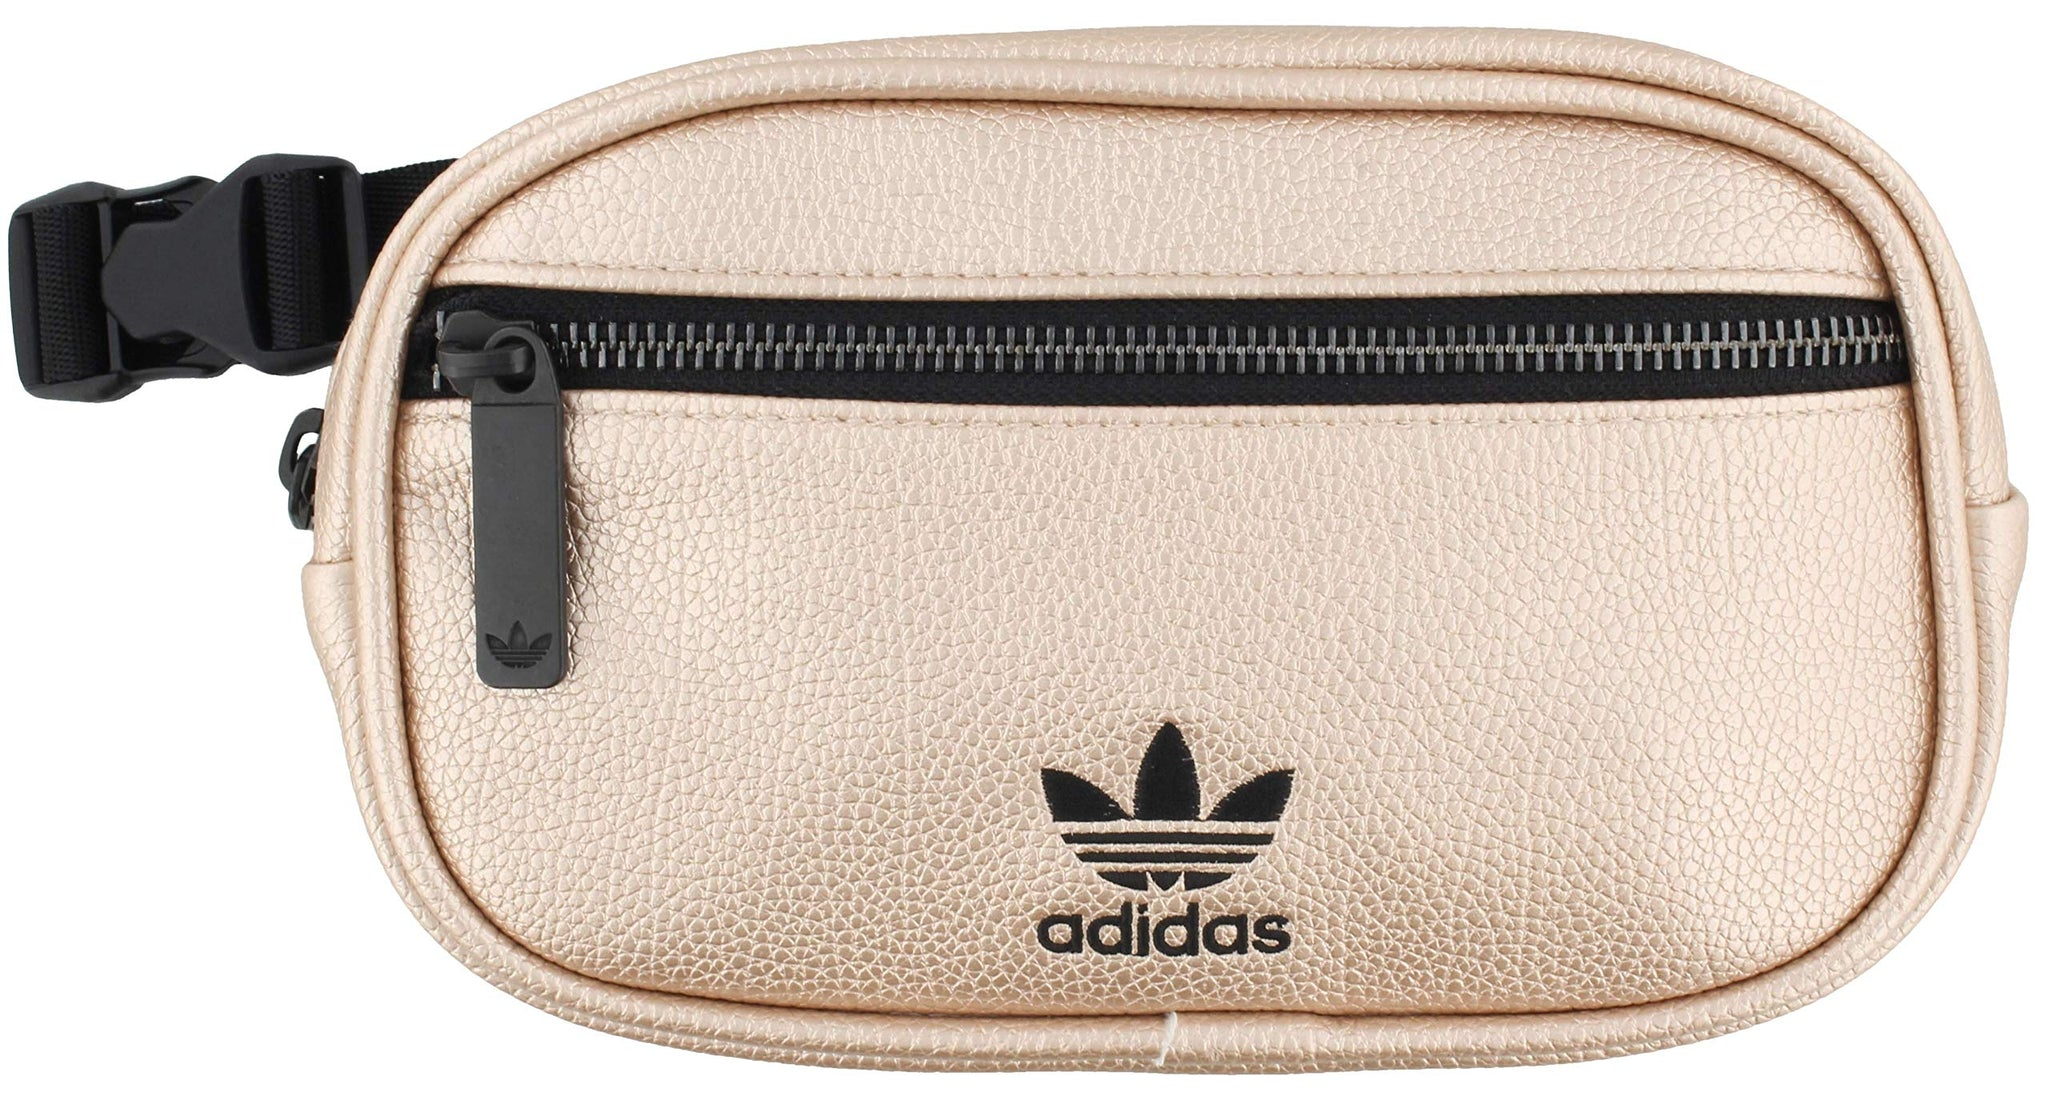 adidas Originals Unisex PU Leather Waist Pack, Rose Gold/Black, ONE SIZE